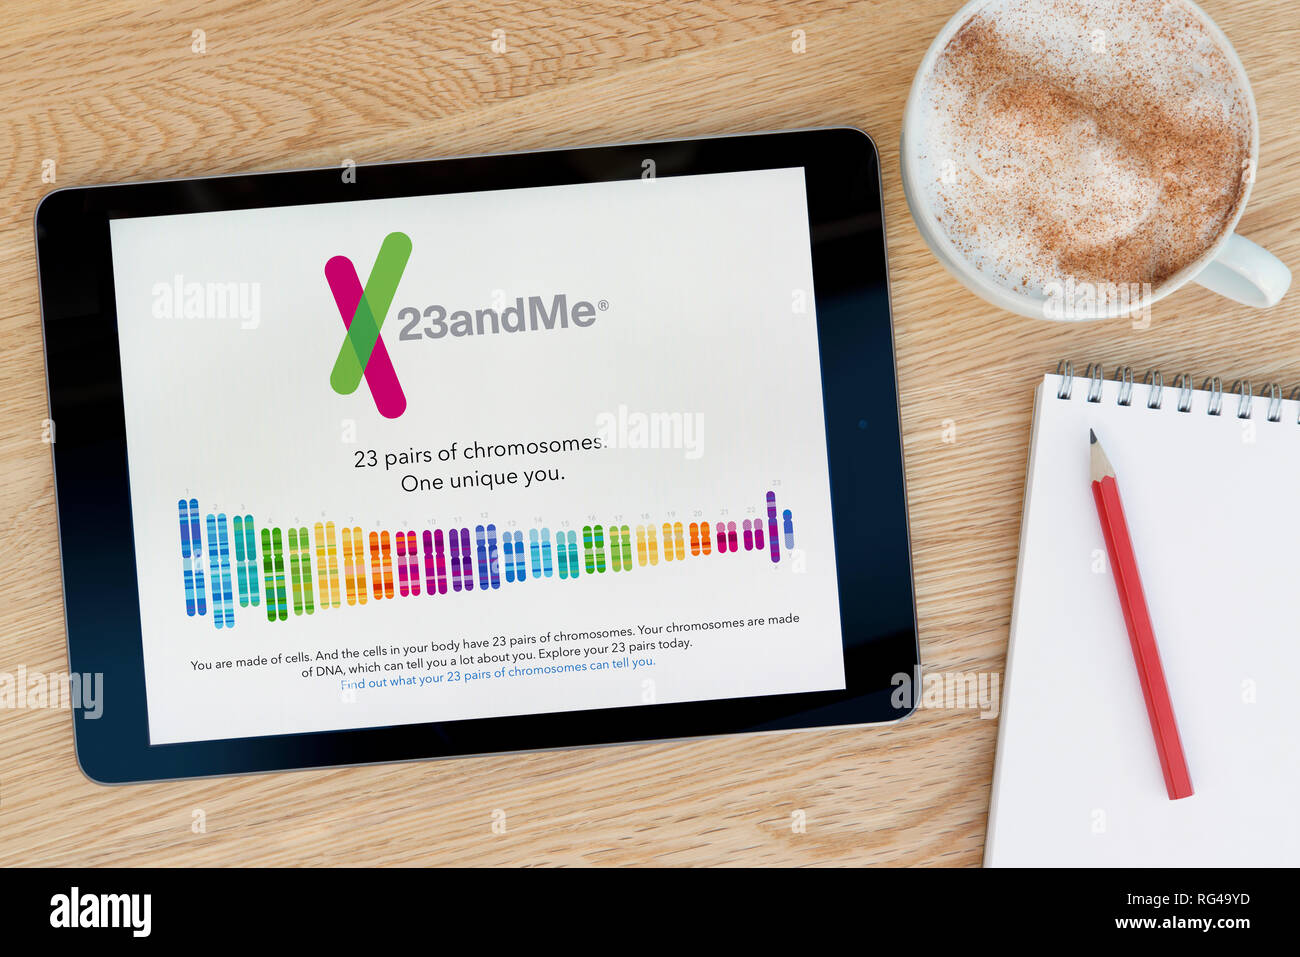 The 23andMe website features on an iPad tablet device which rests on a wooden table beside a notepad (Editorial use only). - Stock Image